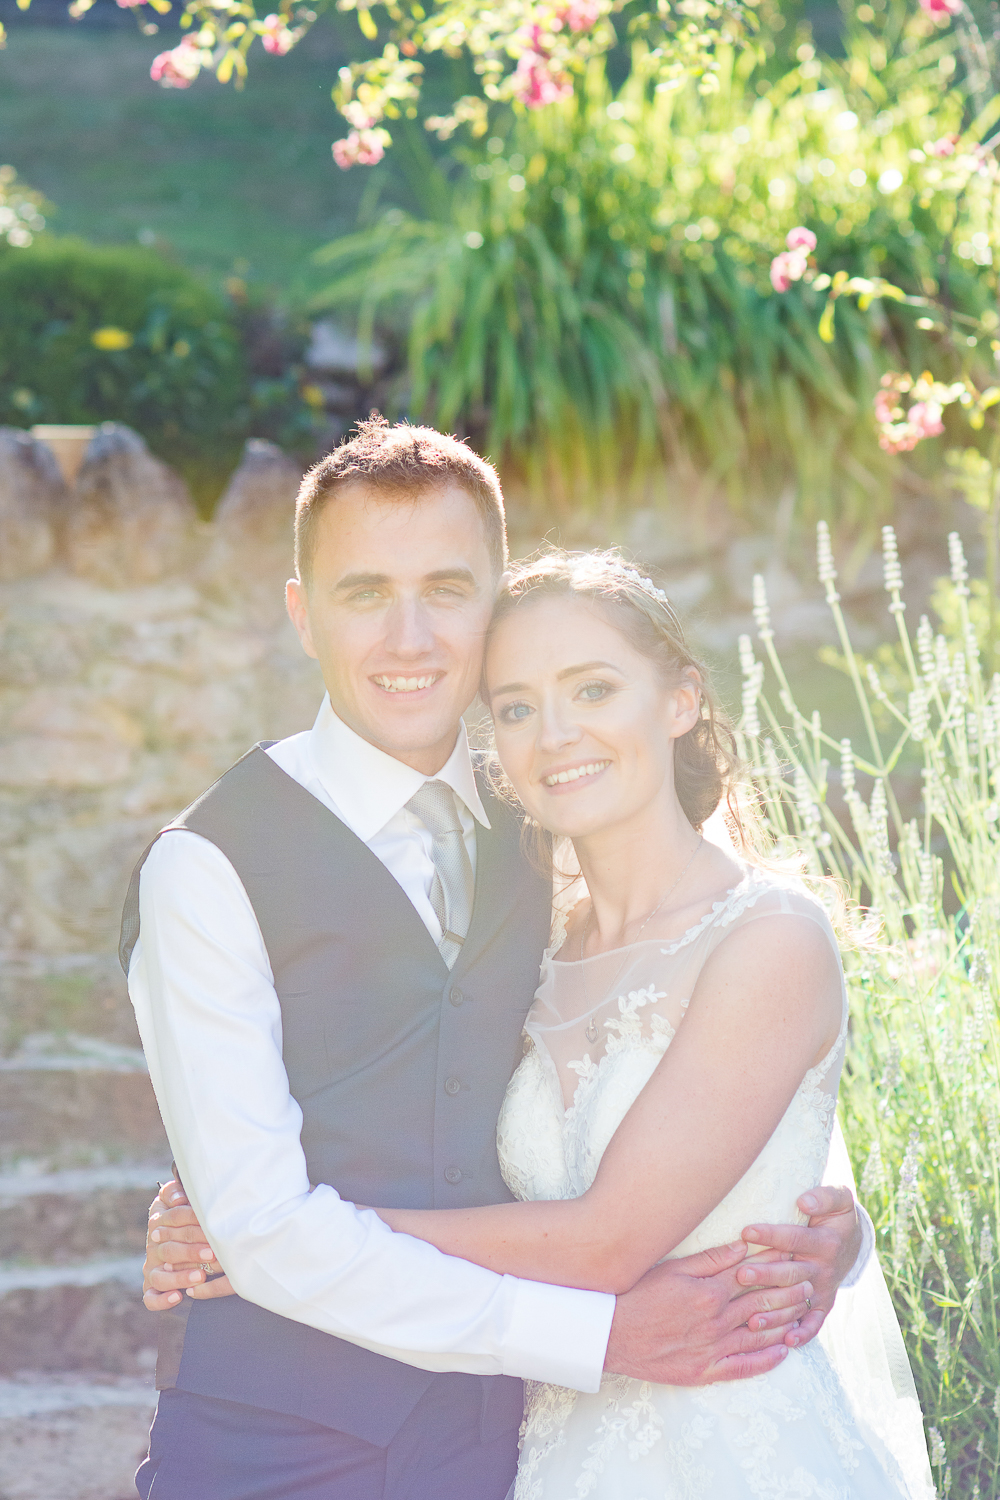 Beautiful Bride and Groom portrait in hazed light in the gardens at the Bickley Mill wedding venue in Devon